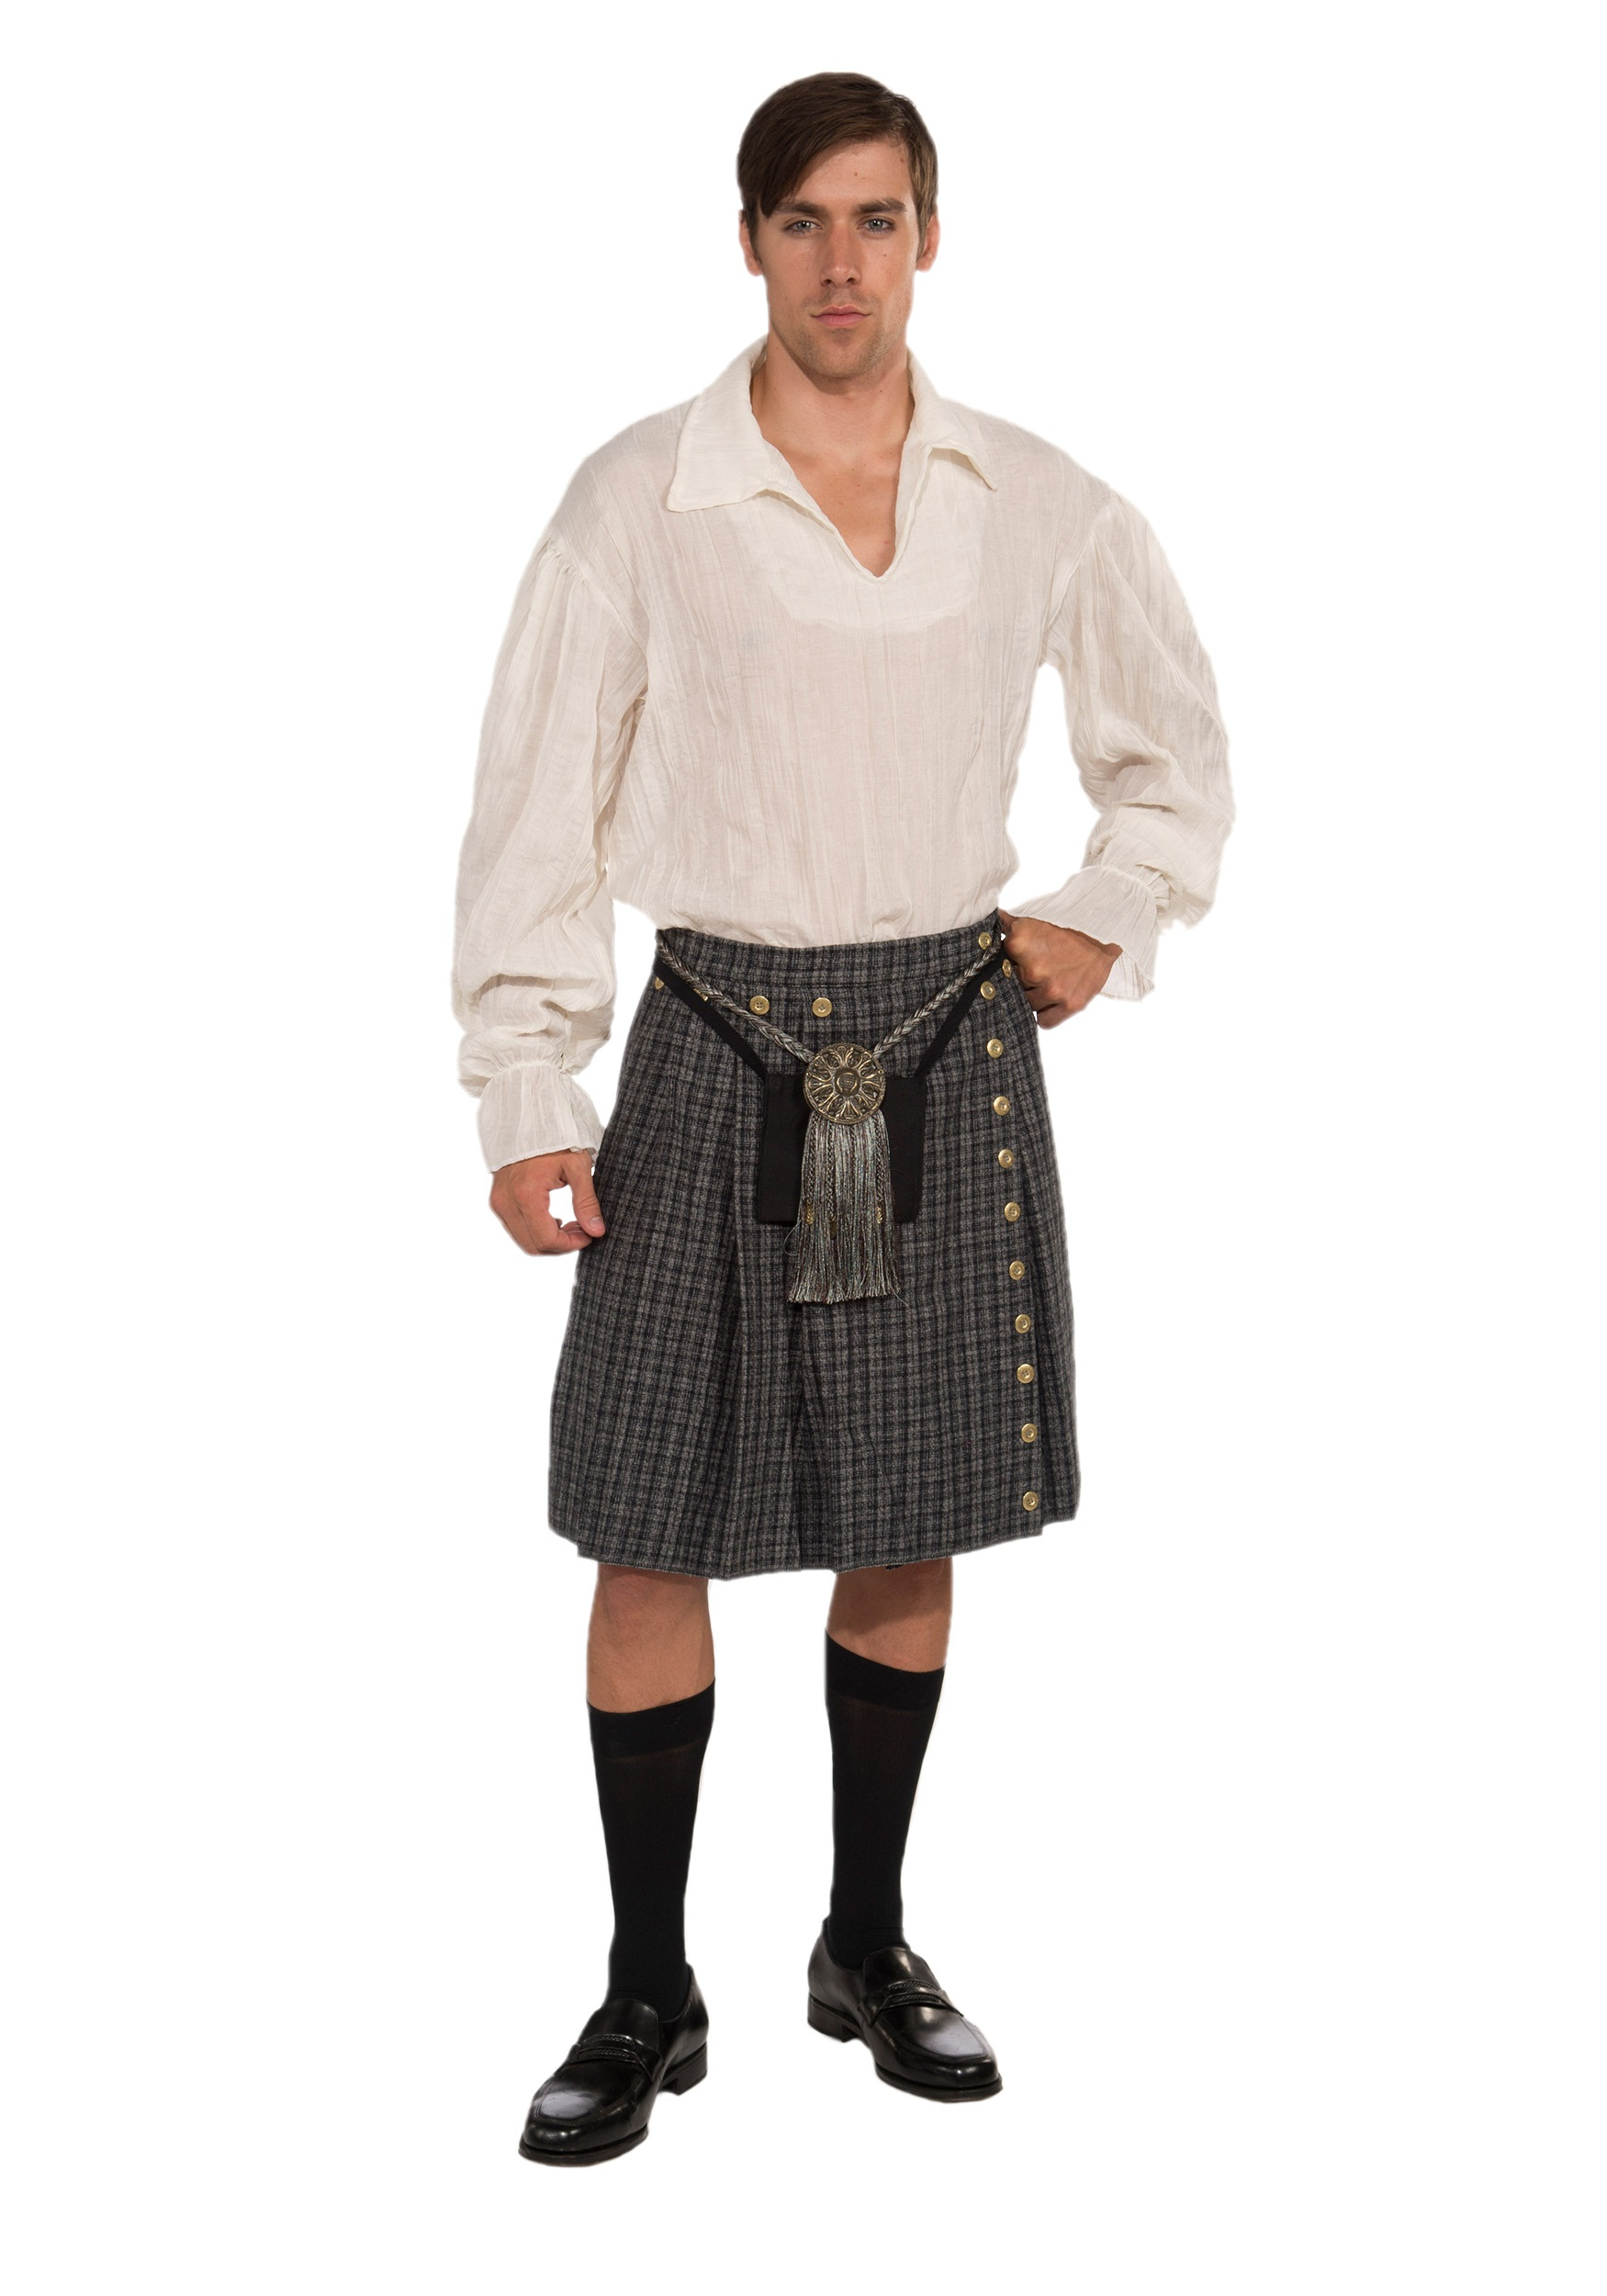 back toadult costumes international costumes mens costumes new 2018 costumes scottish costumes theme costumes